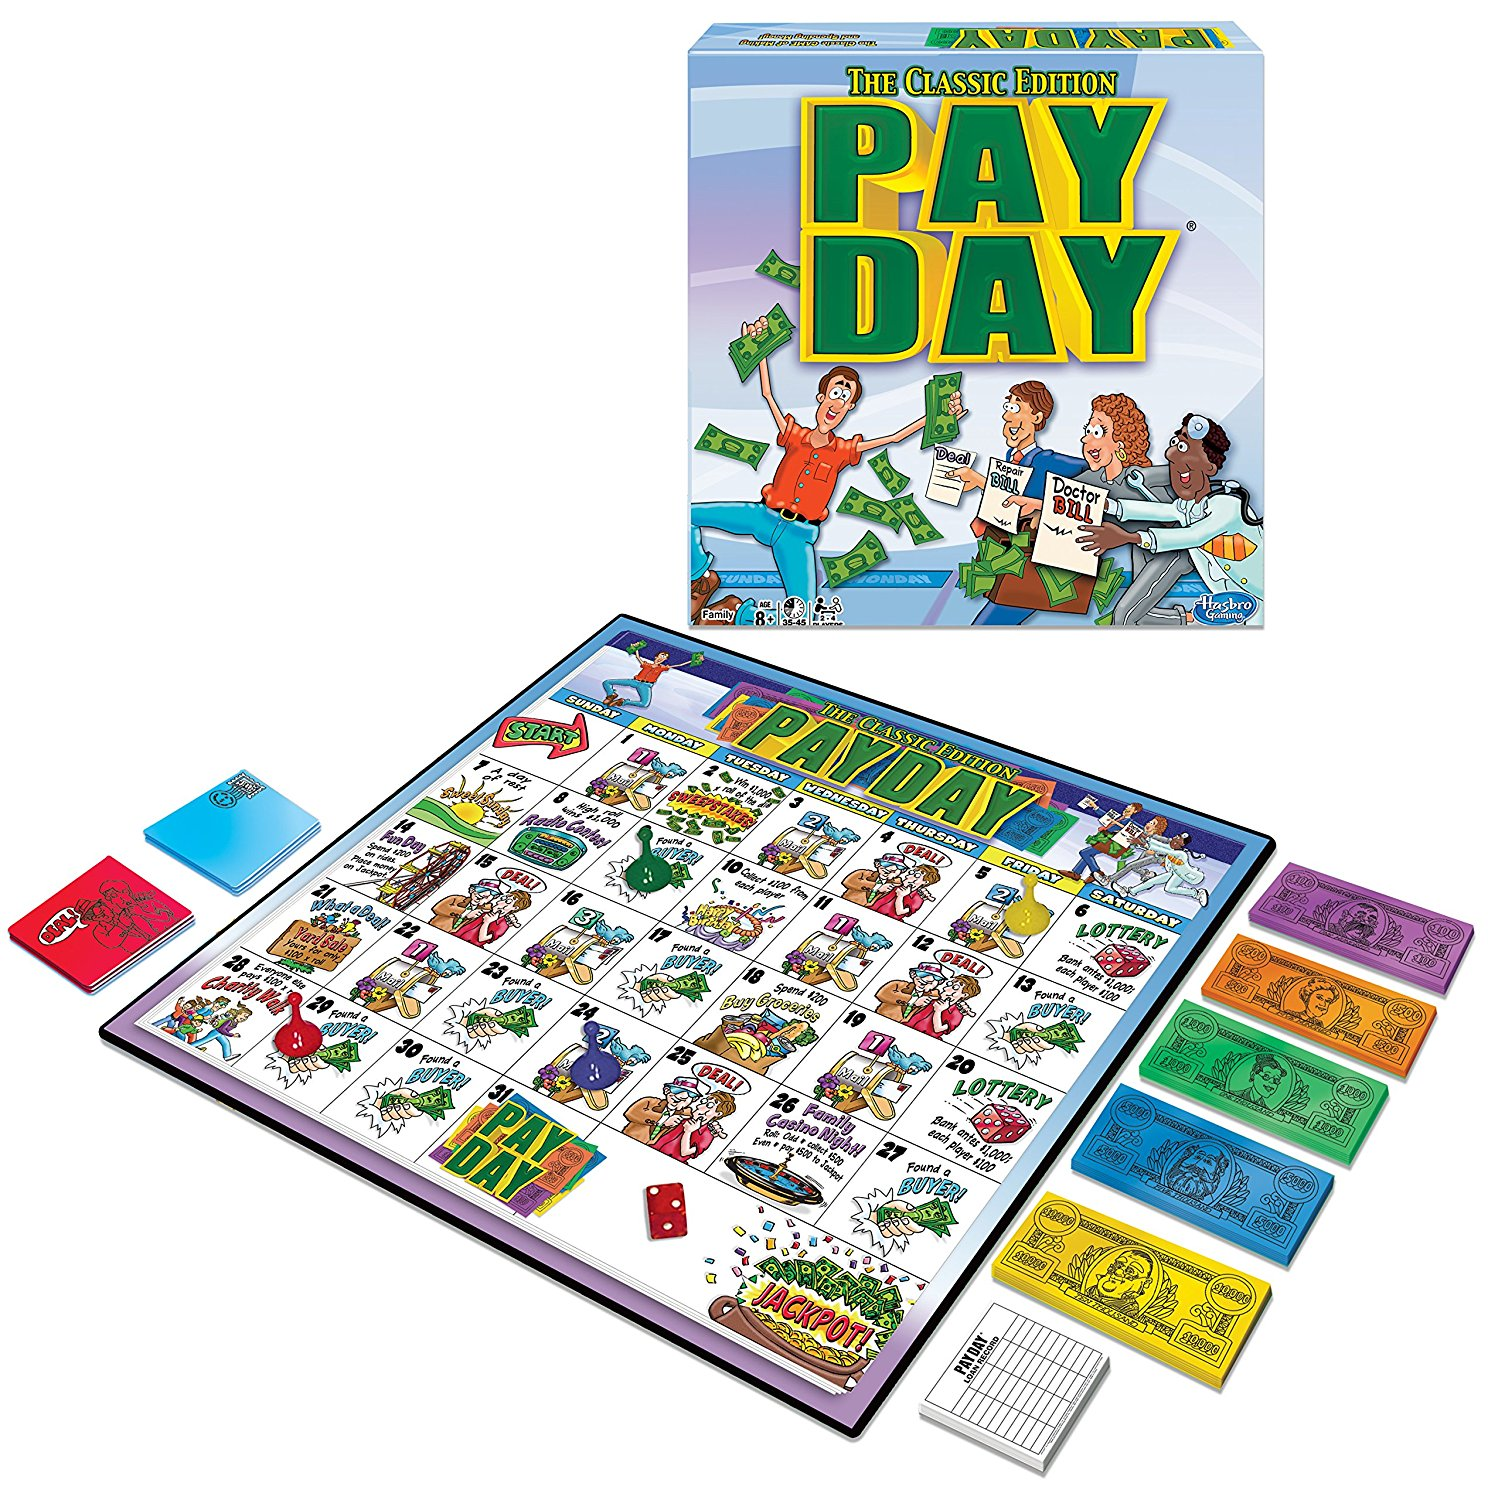 Payday Classic Edition